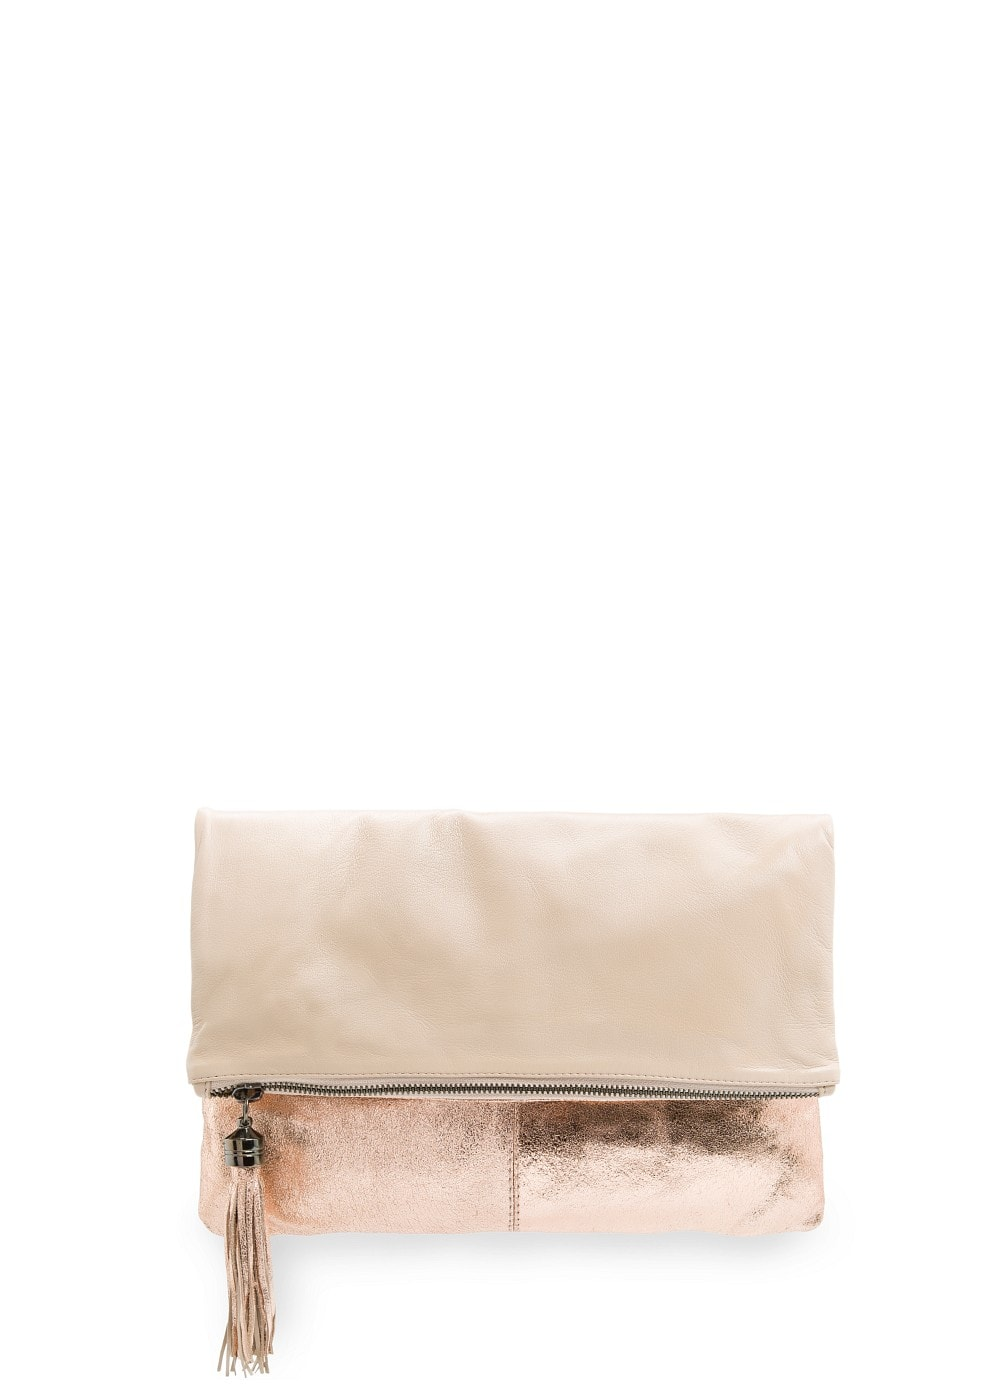 Leather combi clutch